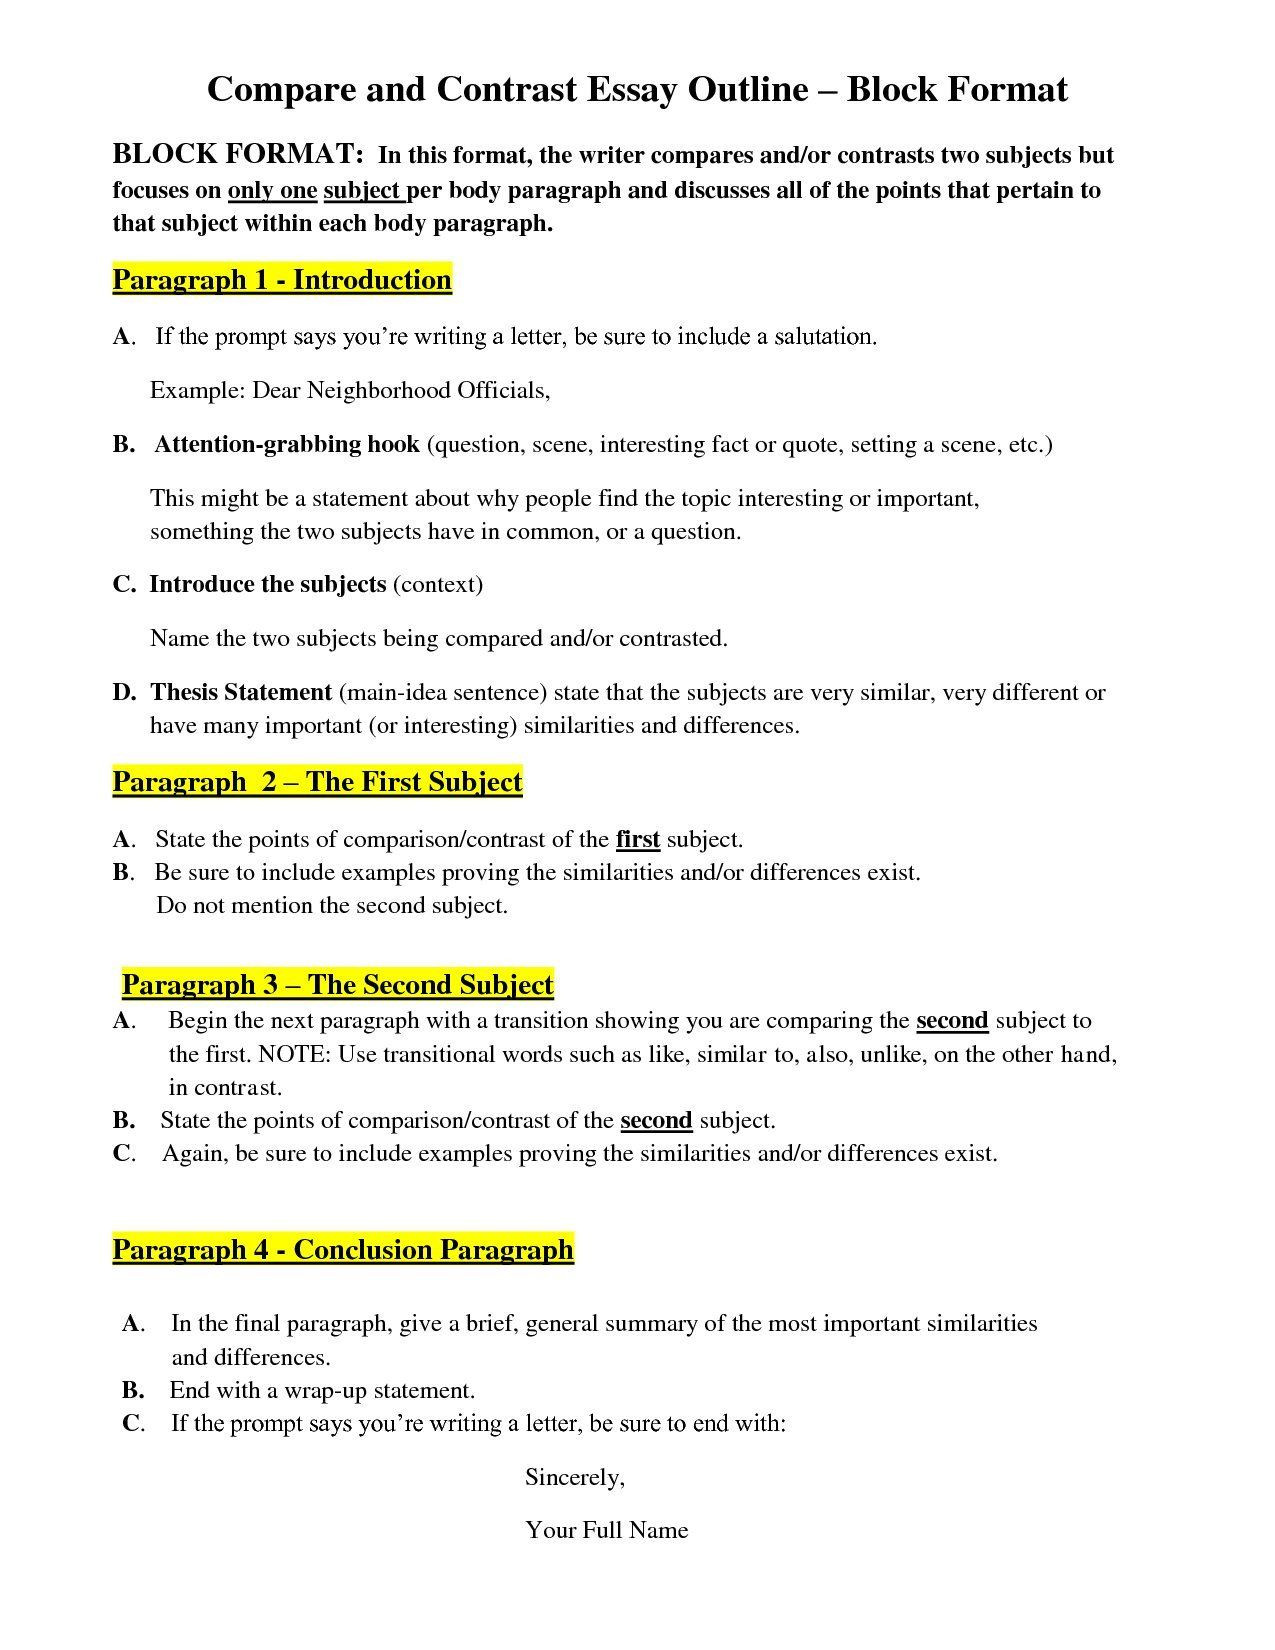 006 Texting While Driving Essay Tok Presentation Template New Outline Persuasive Com And Wonderful Pdf Full